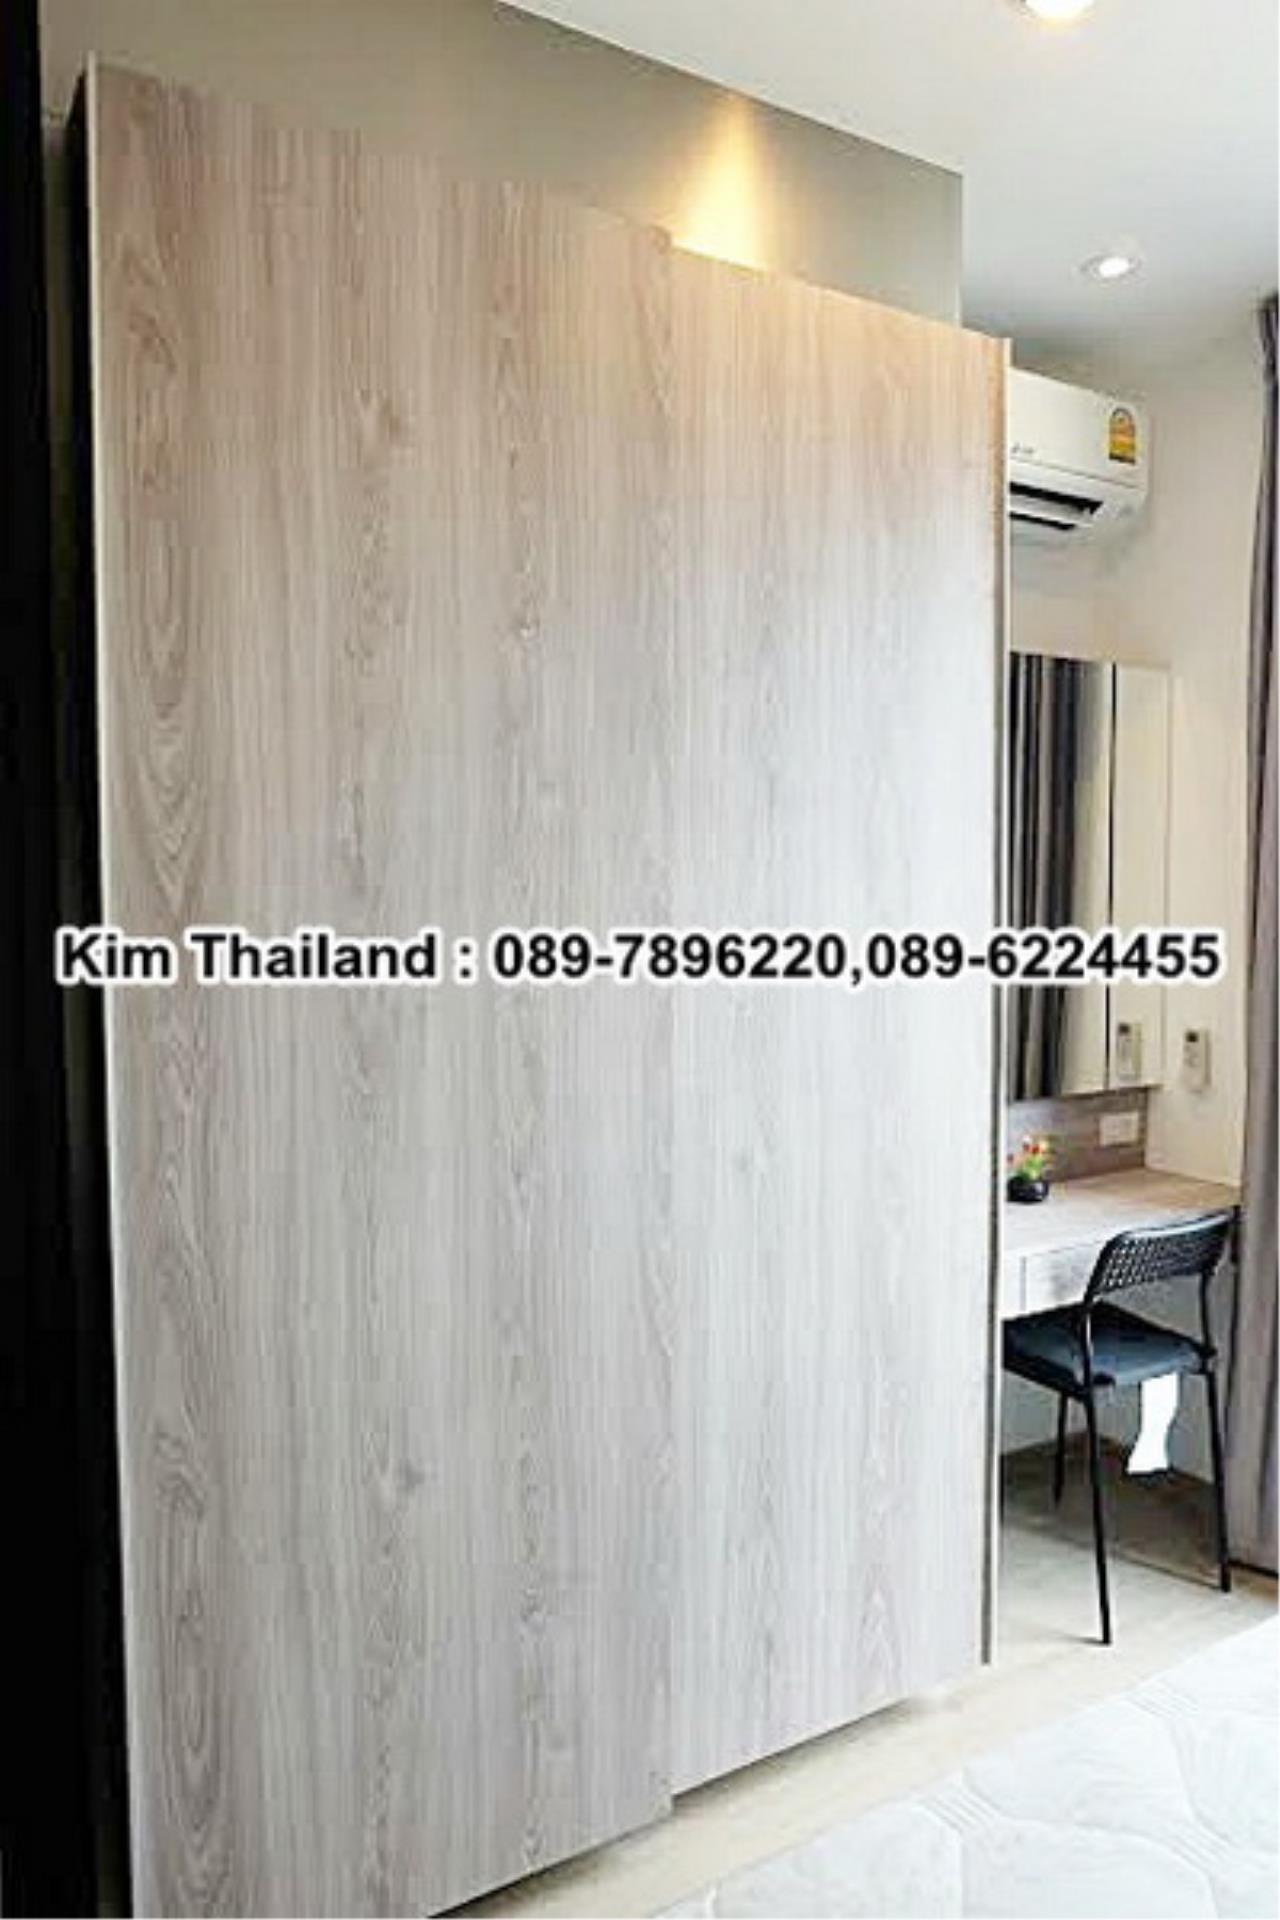 BKKcondorental Agency's Condo for rent,Condo Ideo Q Samyan. Area 29 sqm. 1 bedroom.  Rent 23,000 baht /month. 14